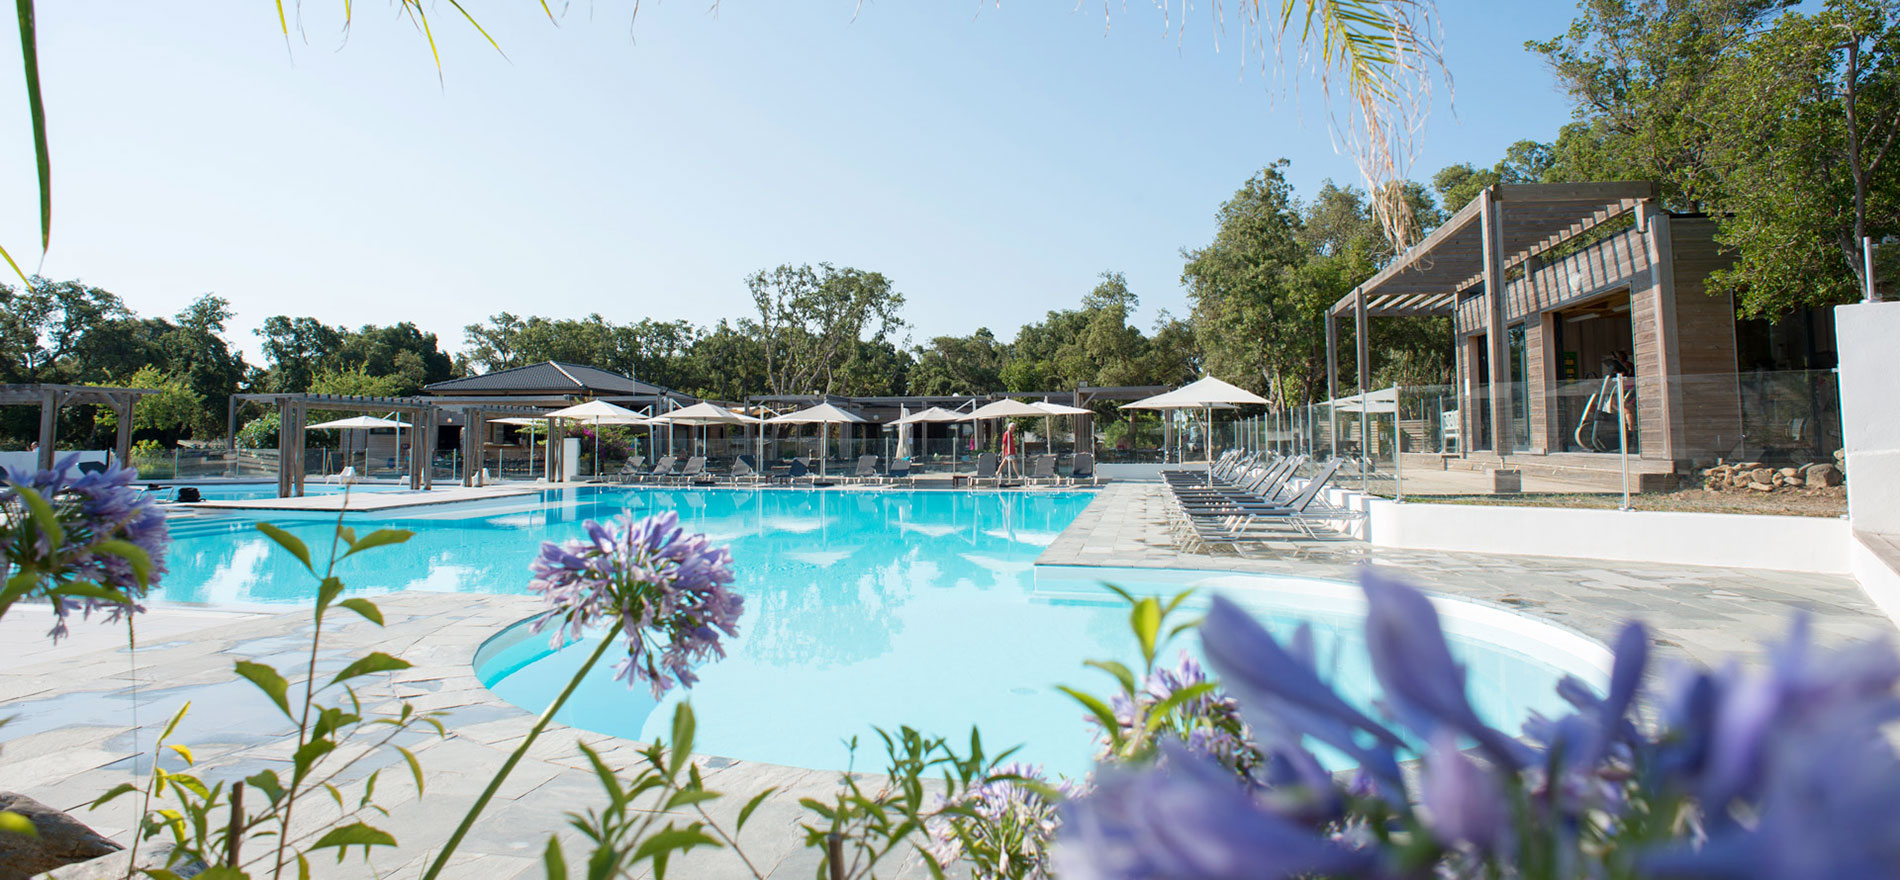 Yelloh village le campoloro in corsica sports and activities for Camping bormes les mimosas piscine